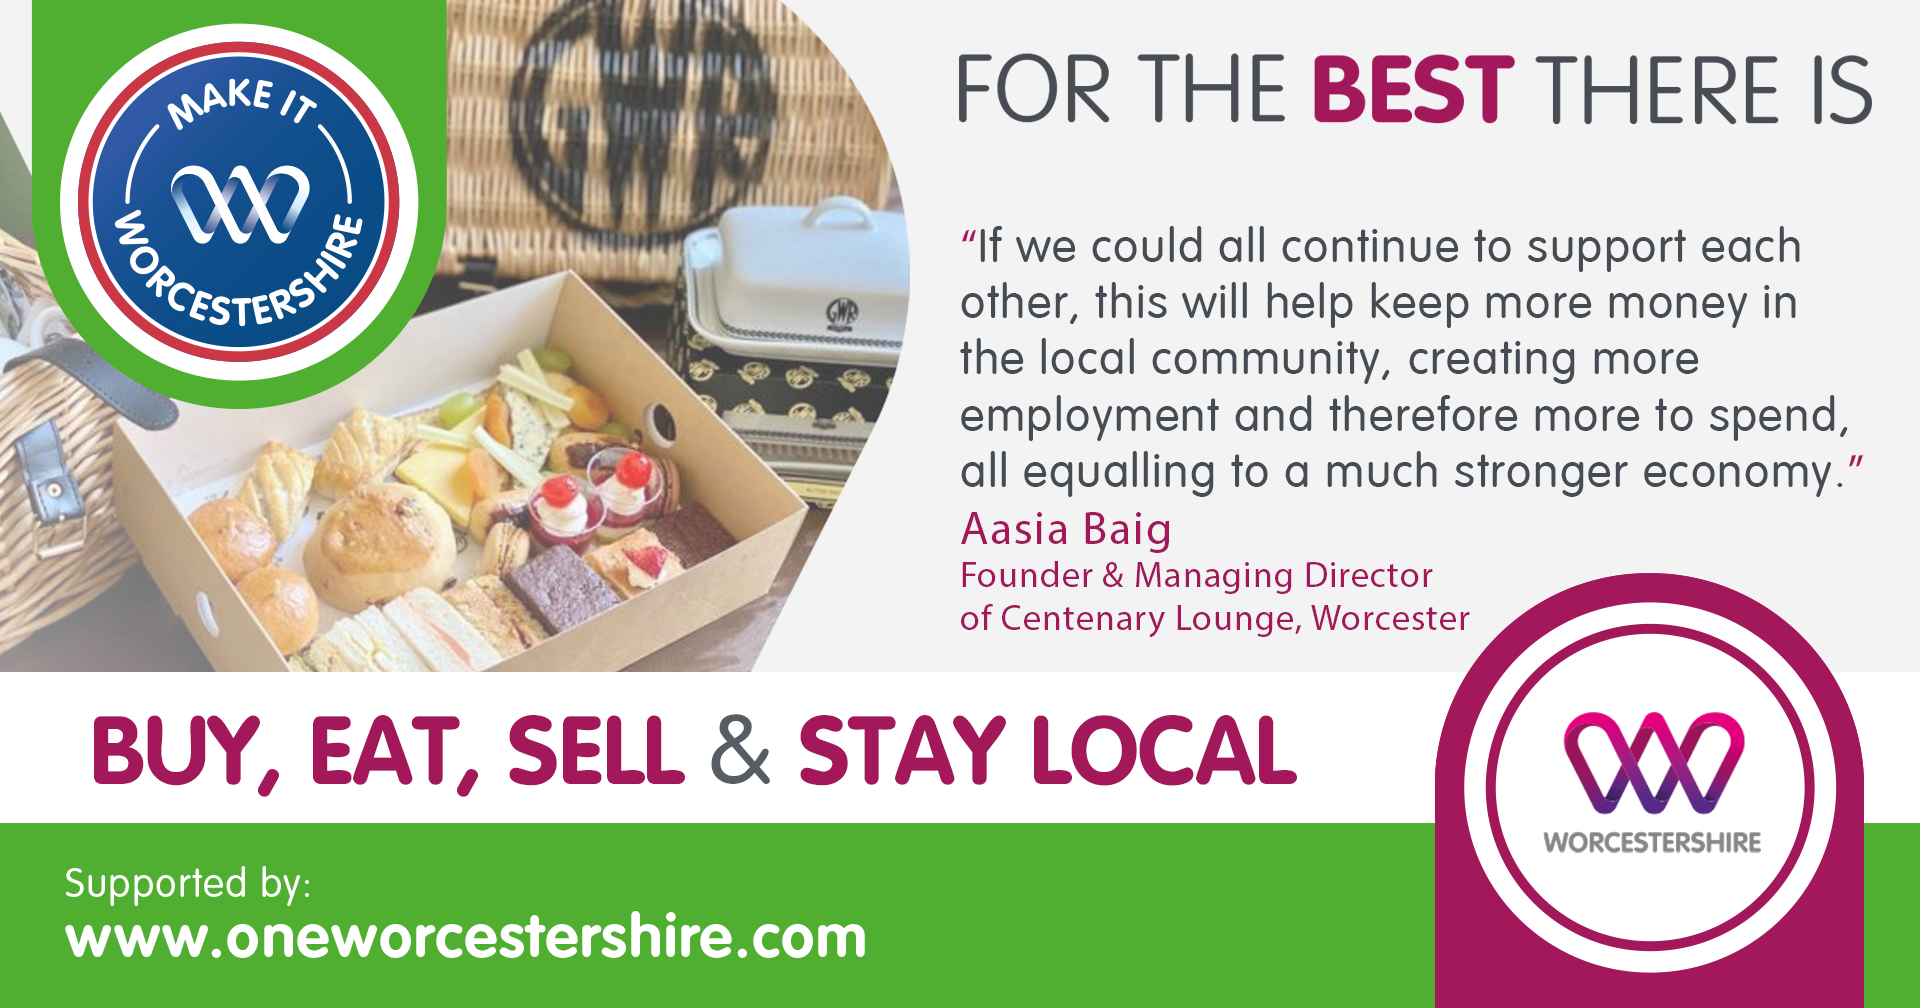 Make It Worcestershire campaign graphic with quote from Aasia Baig, owner of Centenary Lounge, Worcester